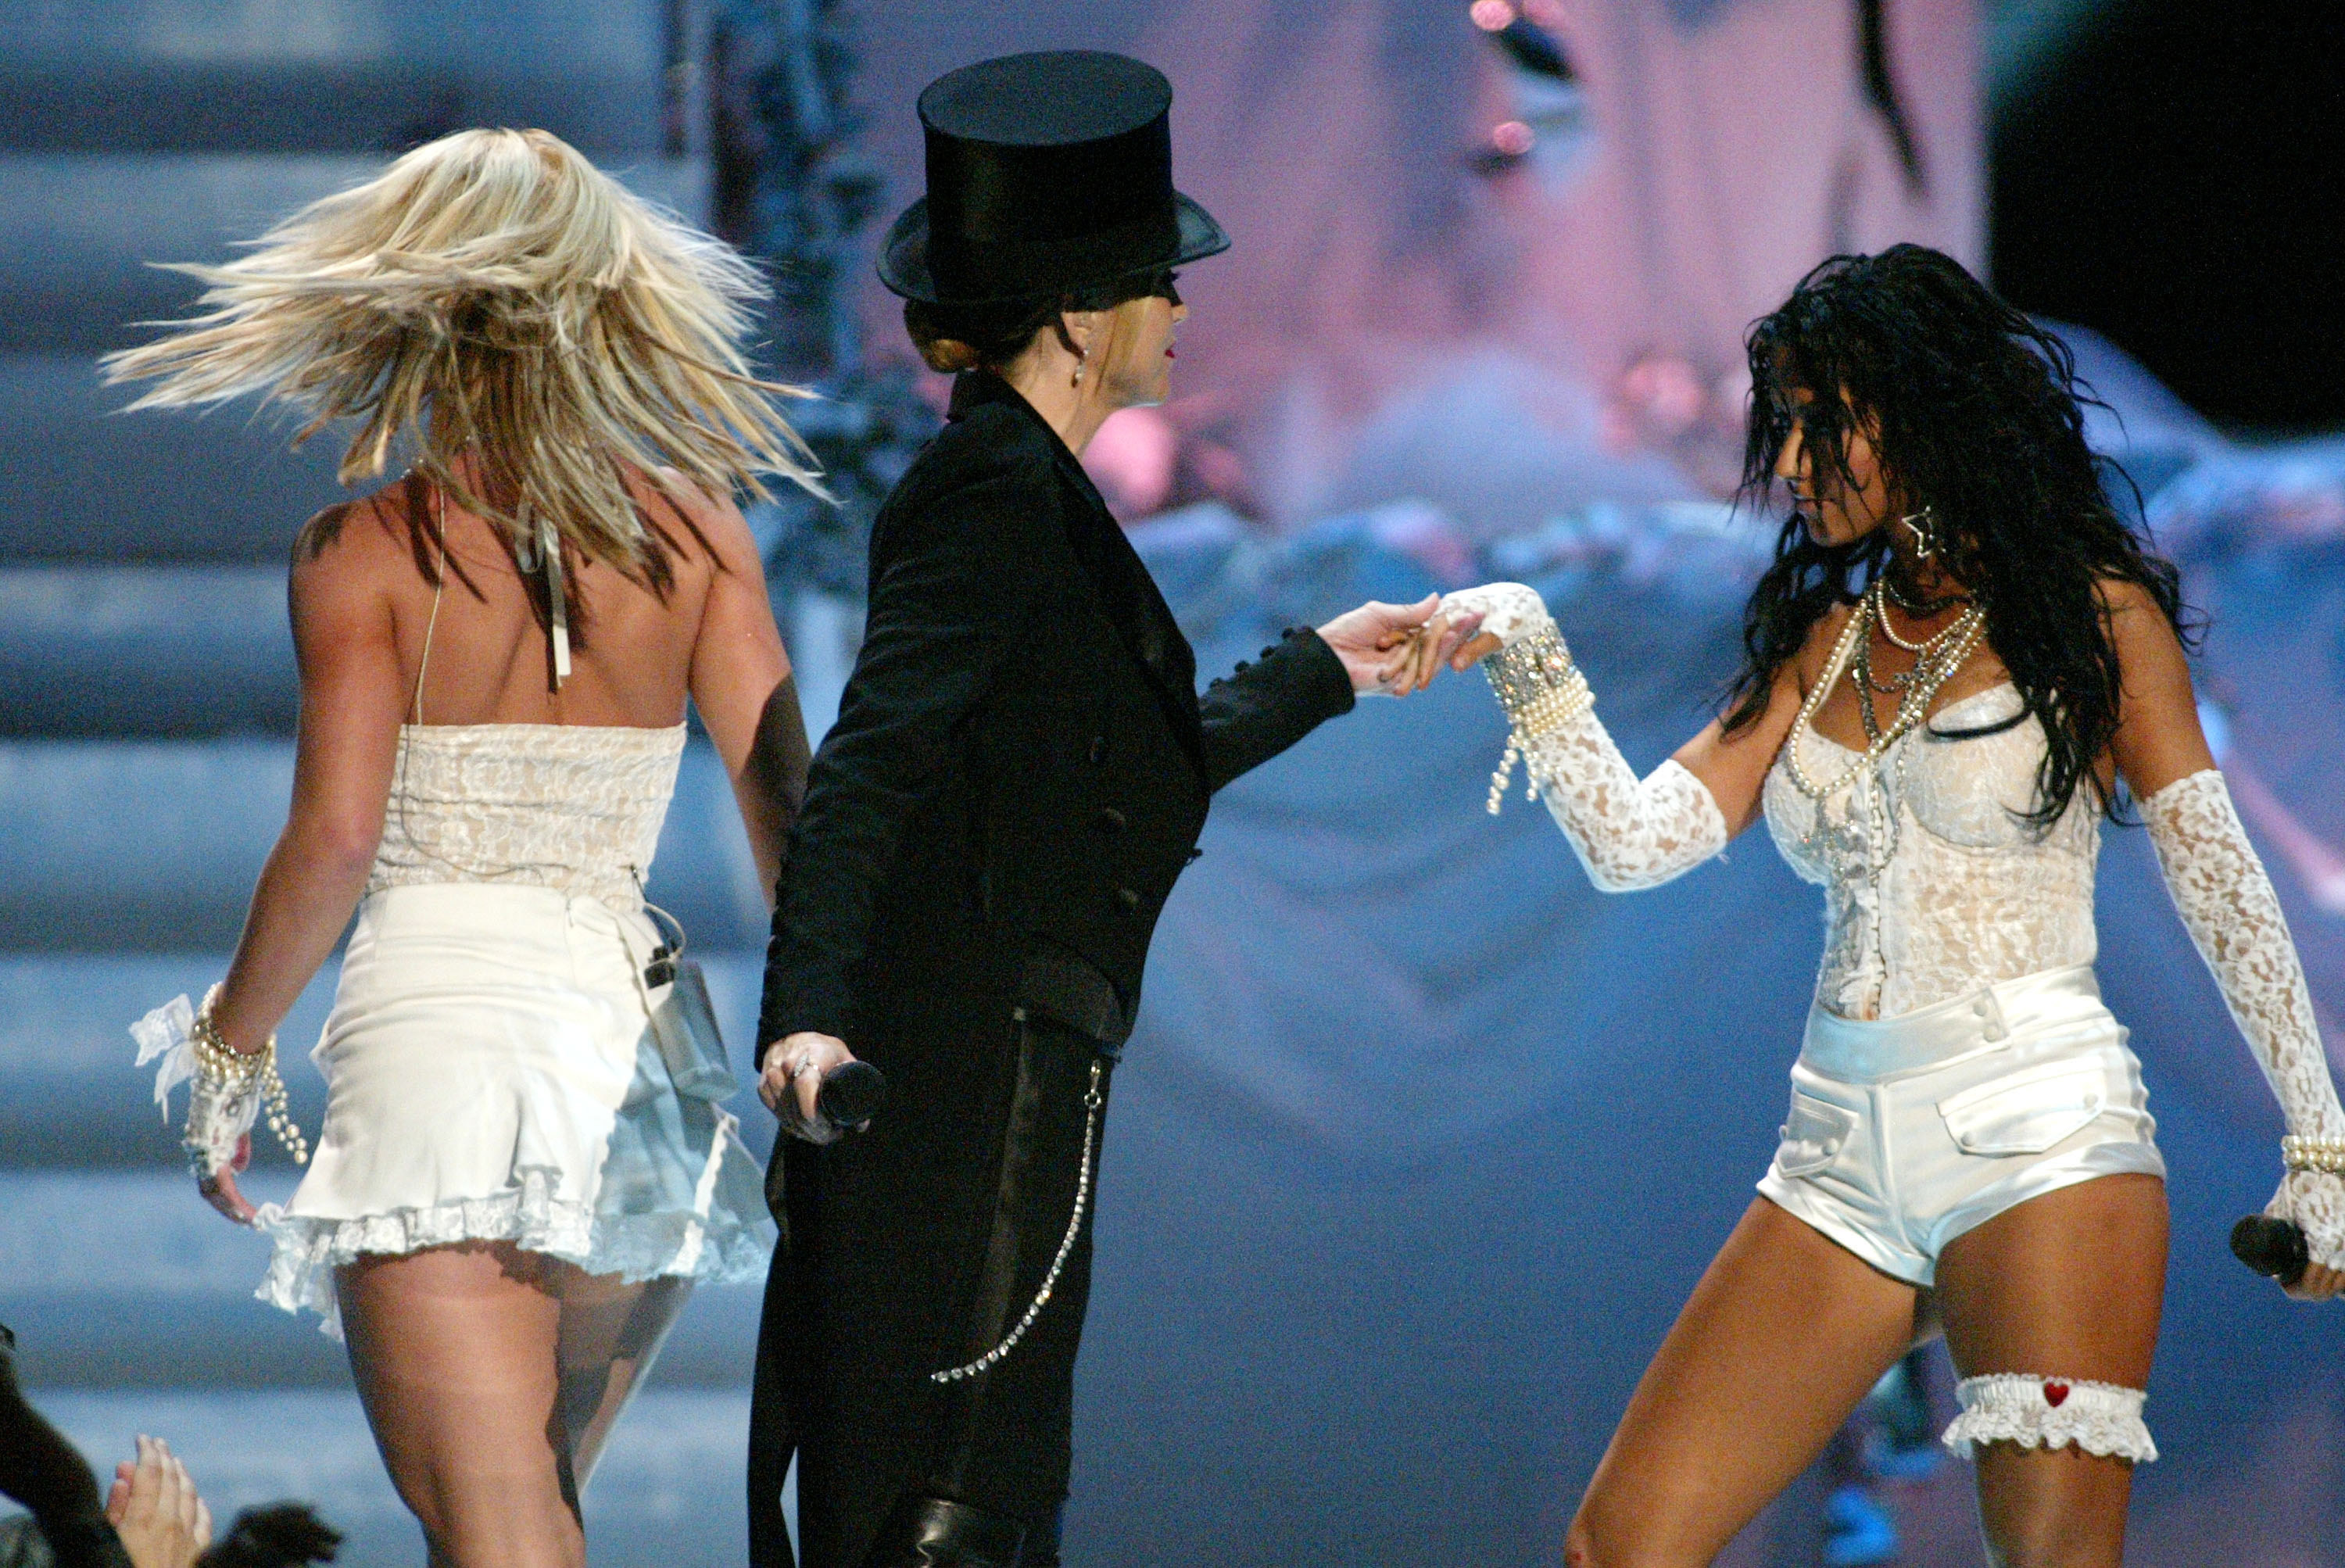 Britney Spears, Madonna, and Christina Aguilera at the 2003 MTV Video Music Awards